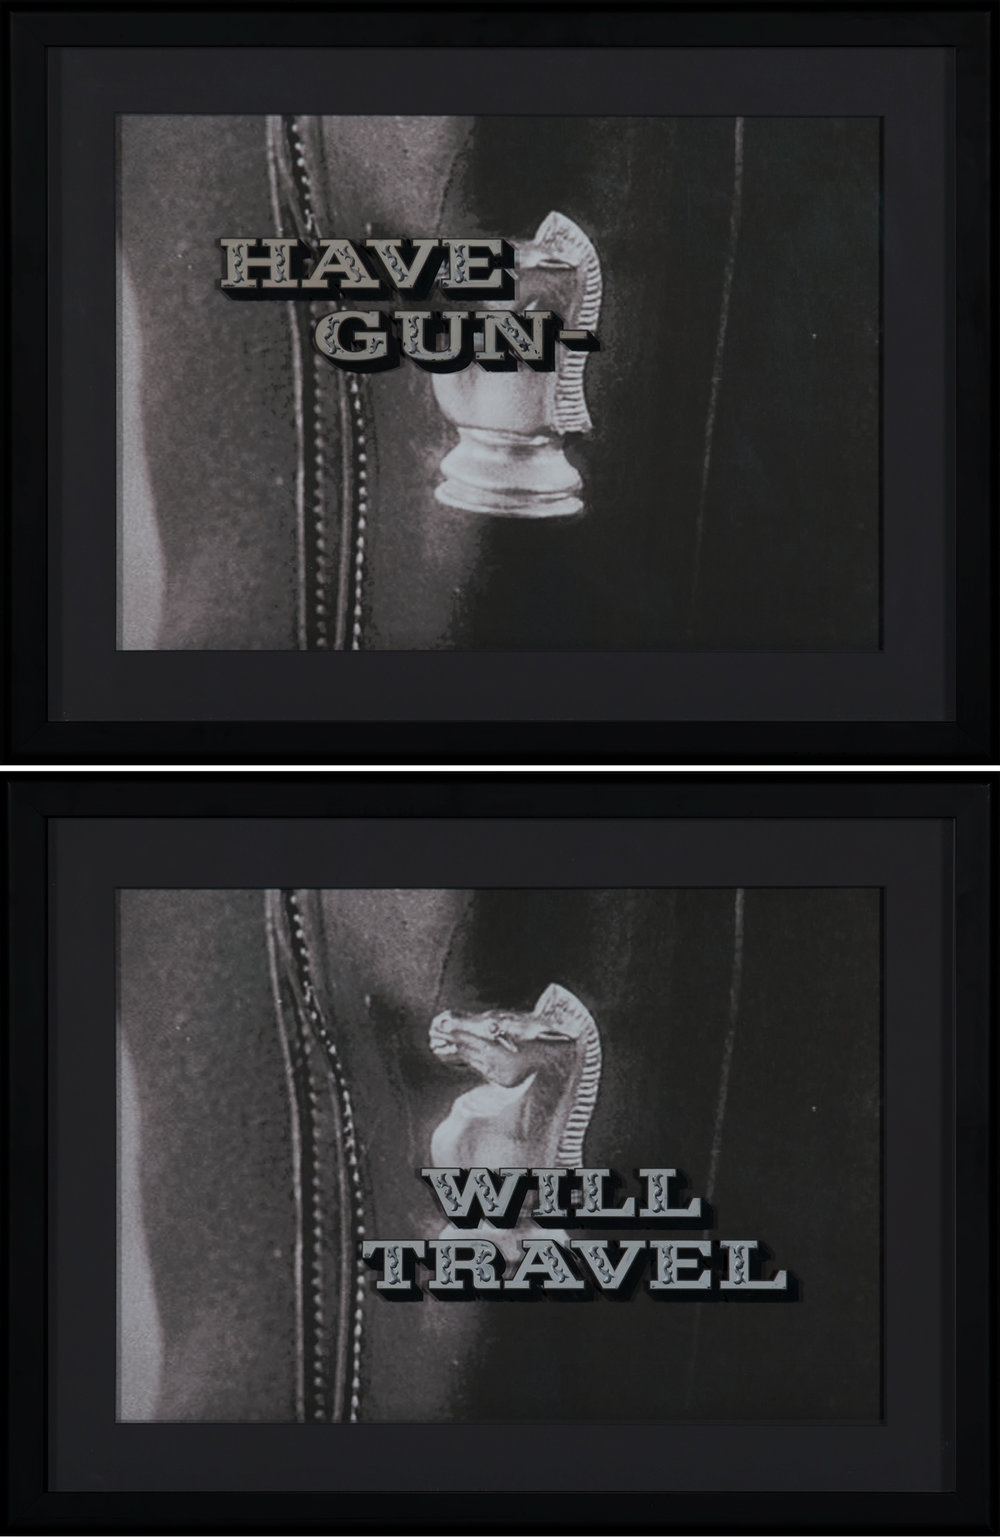 "Original Painted Glass Title Art for Have Gun - Will Travel Lot of 2 framed original, production-used, glass television title art plates for ""Have Gun - Will Travel."" Consisting of two hand-painted panels, which were overlaid during the television main title sequence: ""Have Gun -"" and then fading in, ""Will Travel."" A single panel with all four words was never used. Framed in front of a screen image of Paladin's iconic gun belt and holster, just as it would have appeared in the opening credits. The framed panels are then framed again, creating an interesting display and a protective outer glass layer. Both are framed to 21 ½"" x 28"" overall. Extremely rare and beautifully preserved. Provenance: From Pacific Title Company, Hollywood, CA to current owner.   Lot 215, Brian Lebel's Old West Auction - June 23rd, 2018, Santa Fe, NM. Estimate $30,000-40,000."